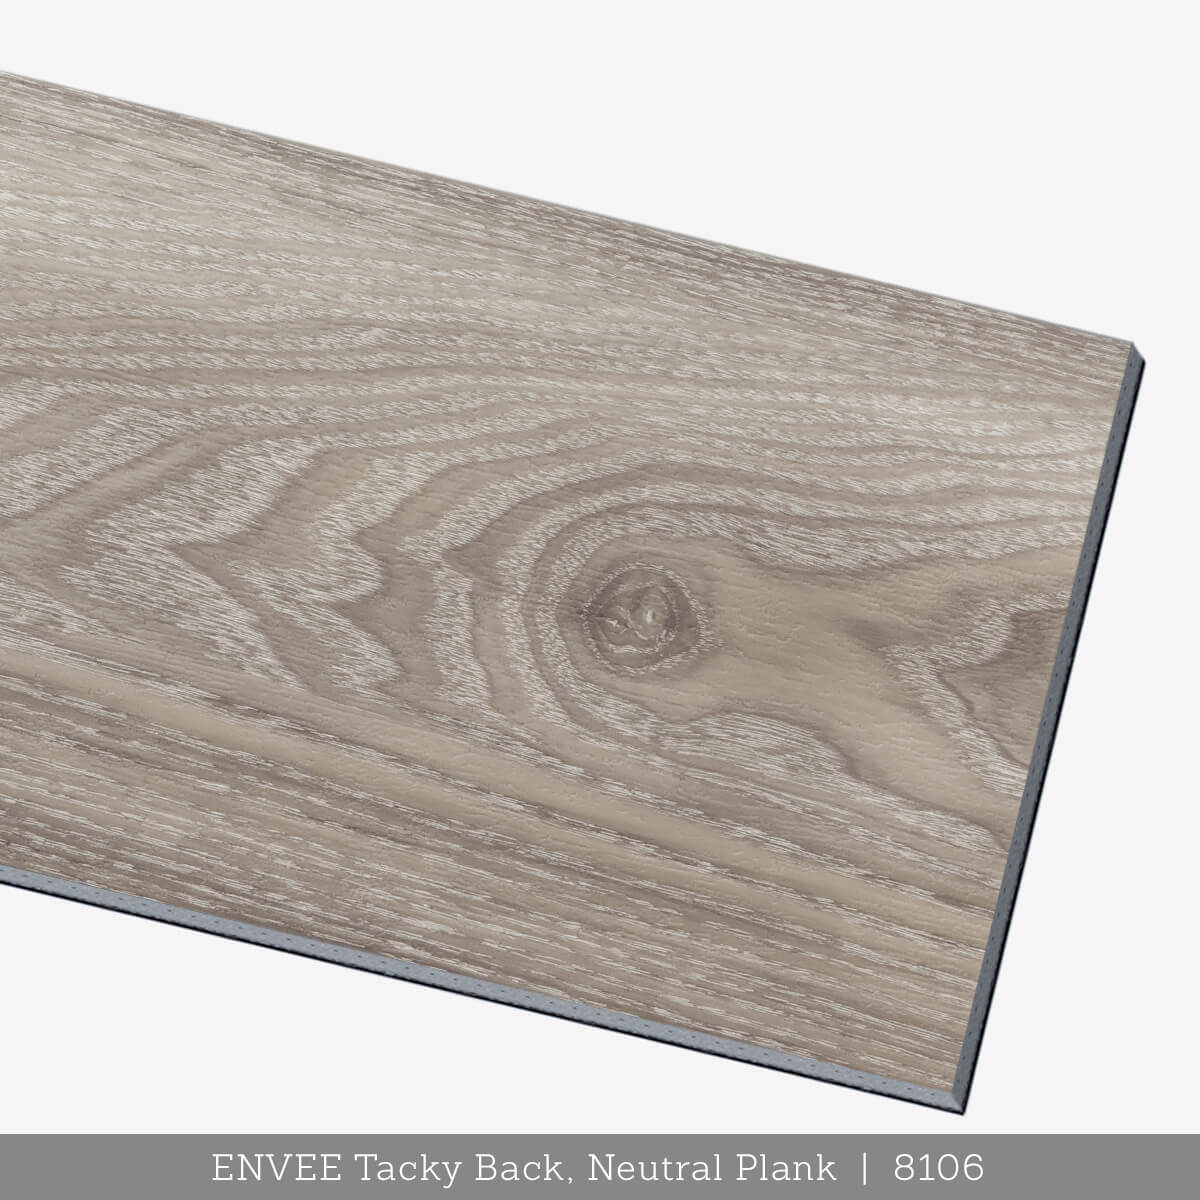 Envee Tacky Back, Neutral Plank